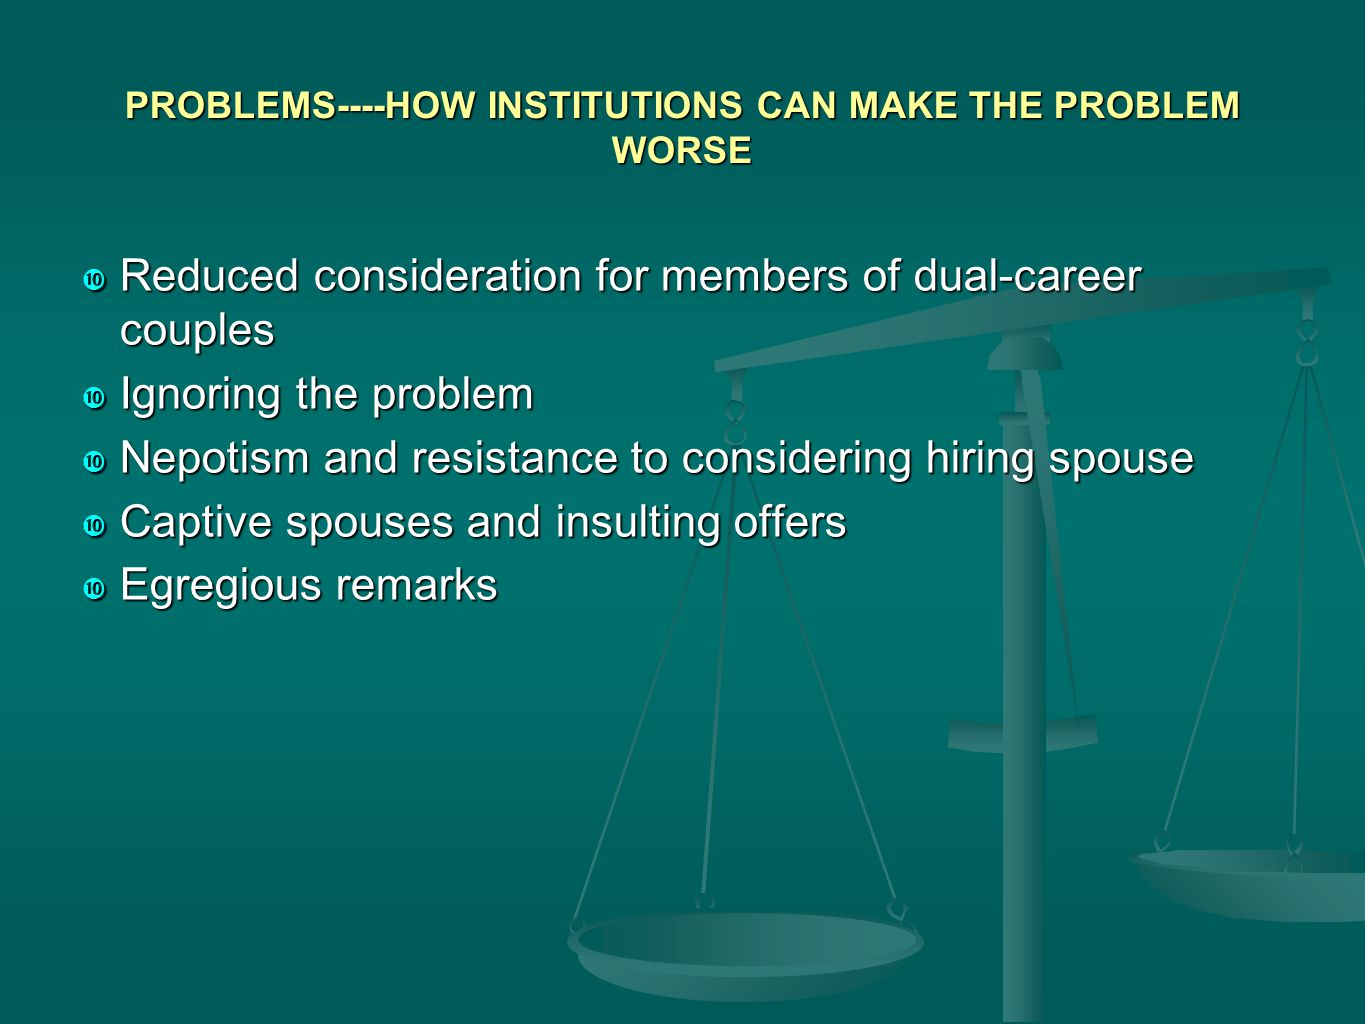 PROBLEMS----HOW INSTITUTIONS CAN MAKE THE PROBLEM WORSE  Reduced consideration for members of dual-career couples  Ignoring the problem  Nepotism and resistance to considering hiring spouse  Captive spouses and insulting offers  Egregious remarks